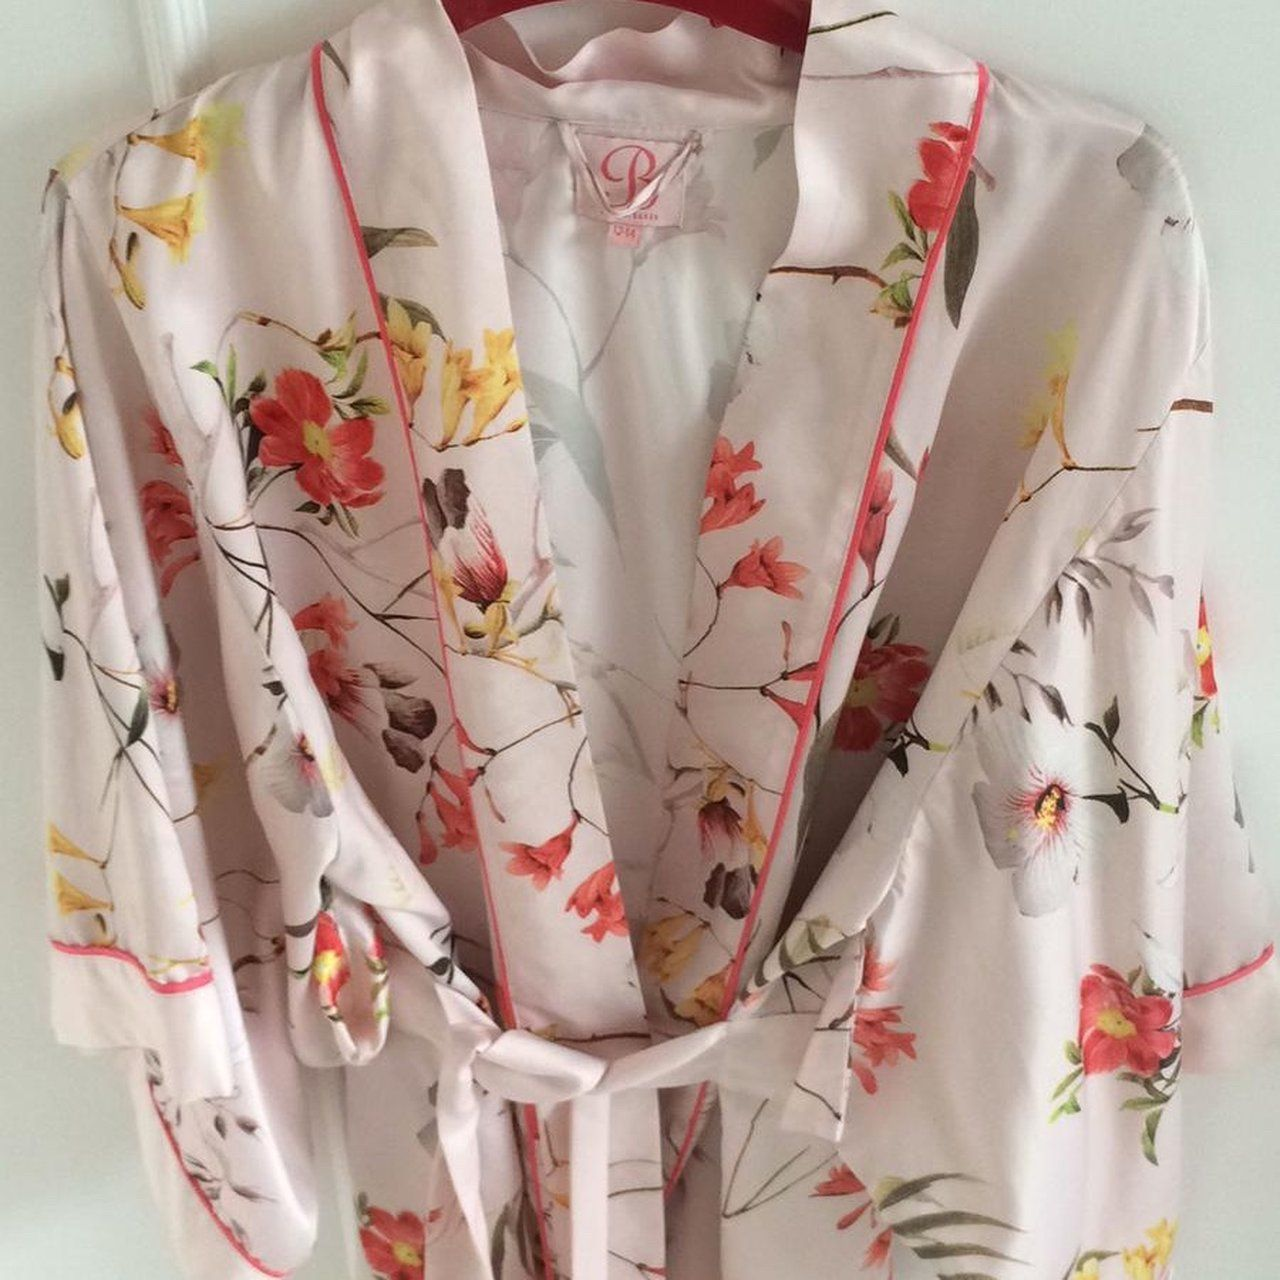 c783db95982 Ted Baker dressing gown for sale. Light and pretty. Size but - Depop